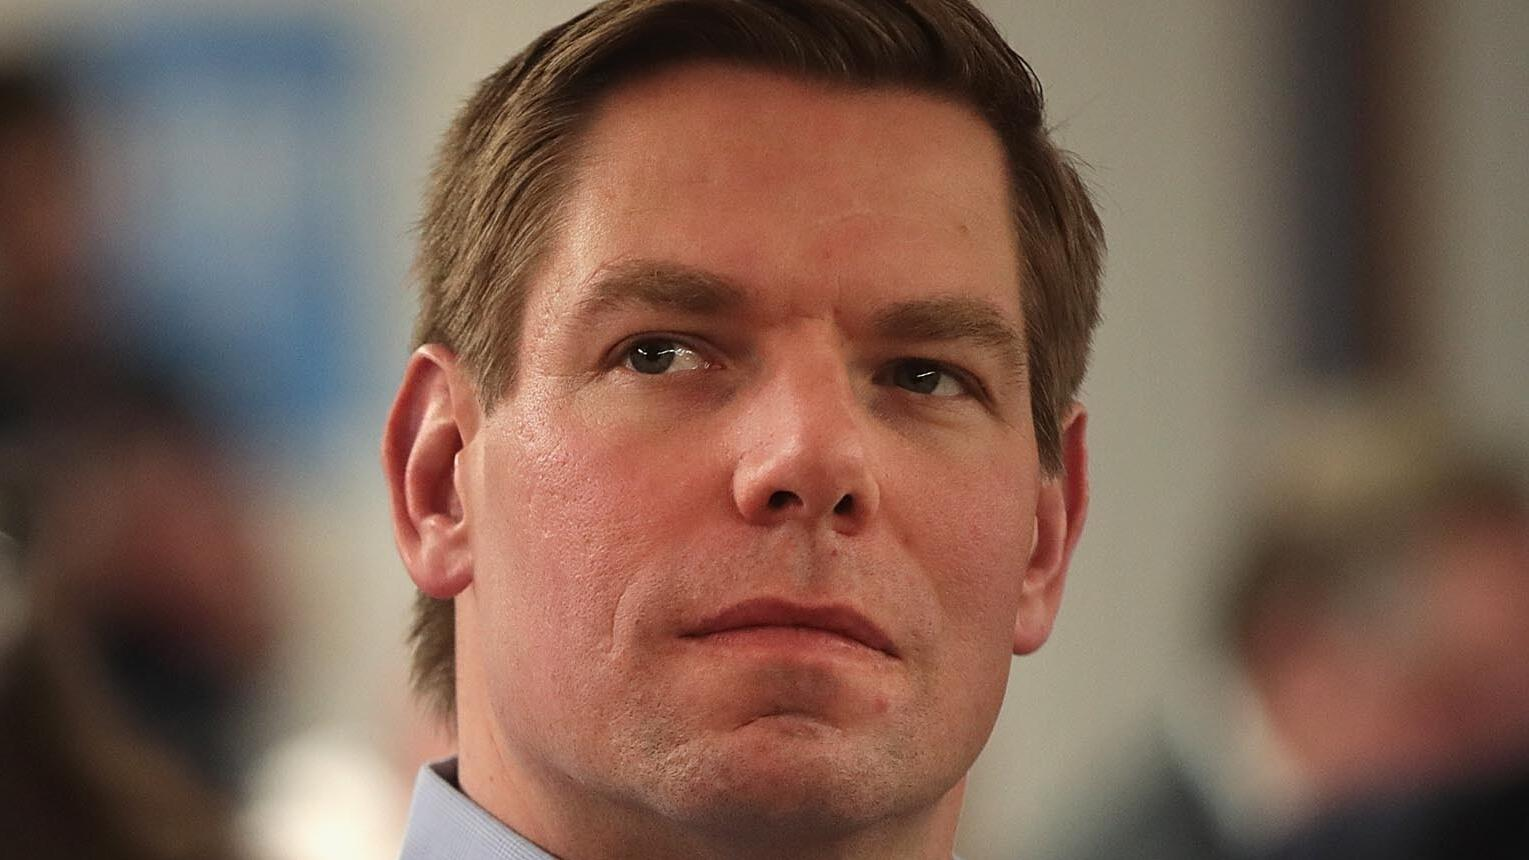 East Bay Rep. Eric Swalwell posts call threatening his life